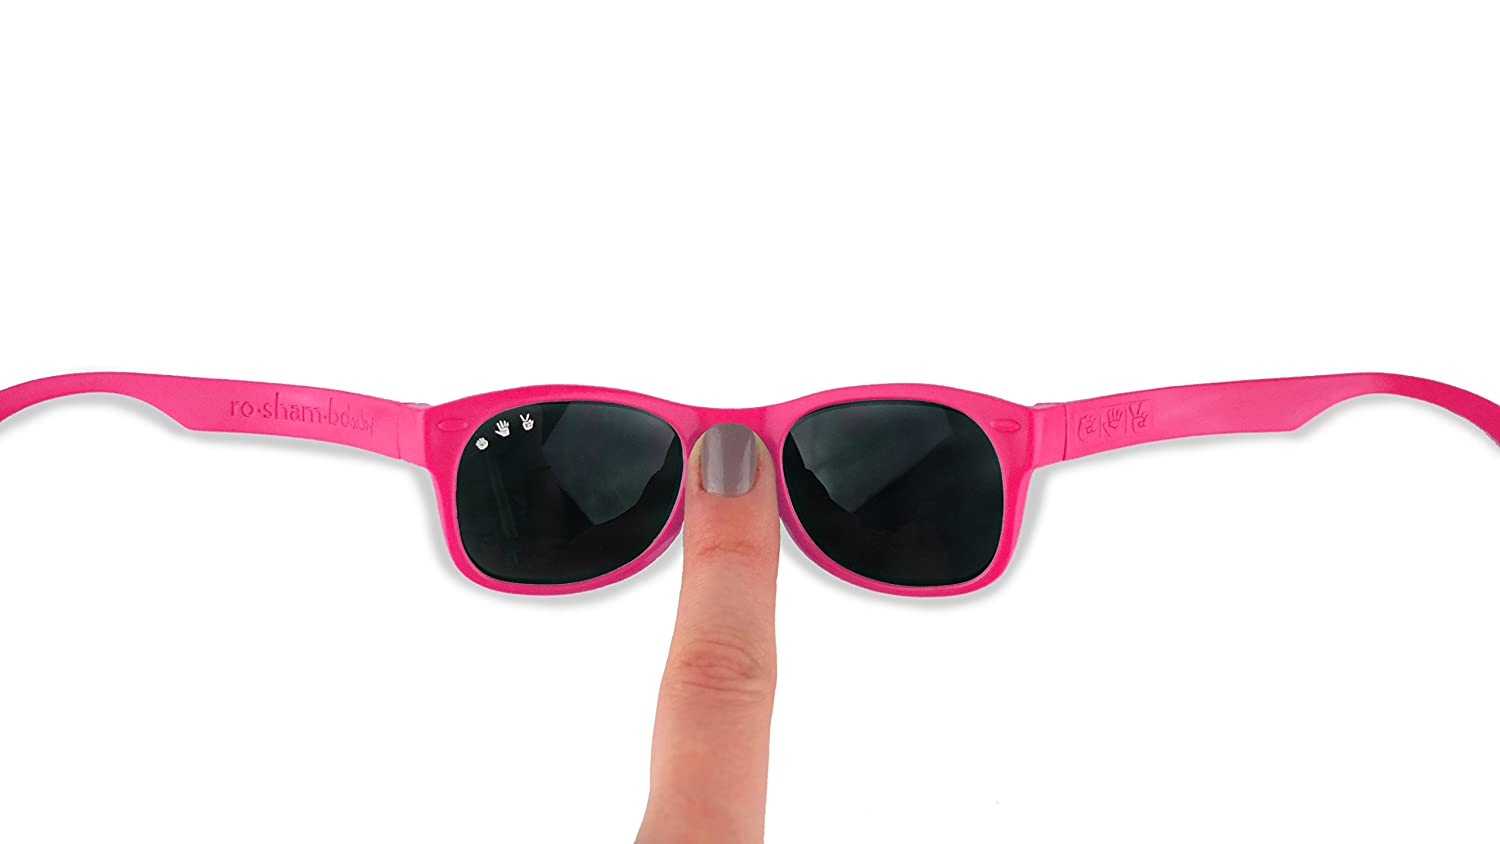 4a260bb83e Roshambo Baby Shades age 0-2years 100% UVA UVB Protection Completely  unbreakable sunglasses available in many colours  Amazon.co.uk  Baby